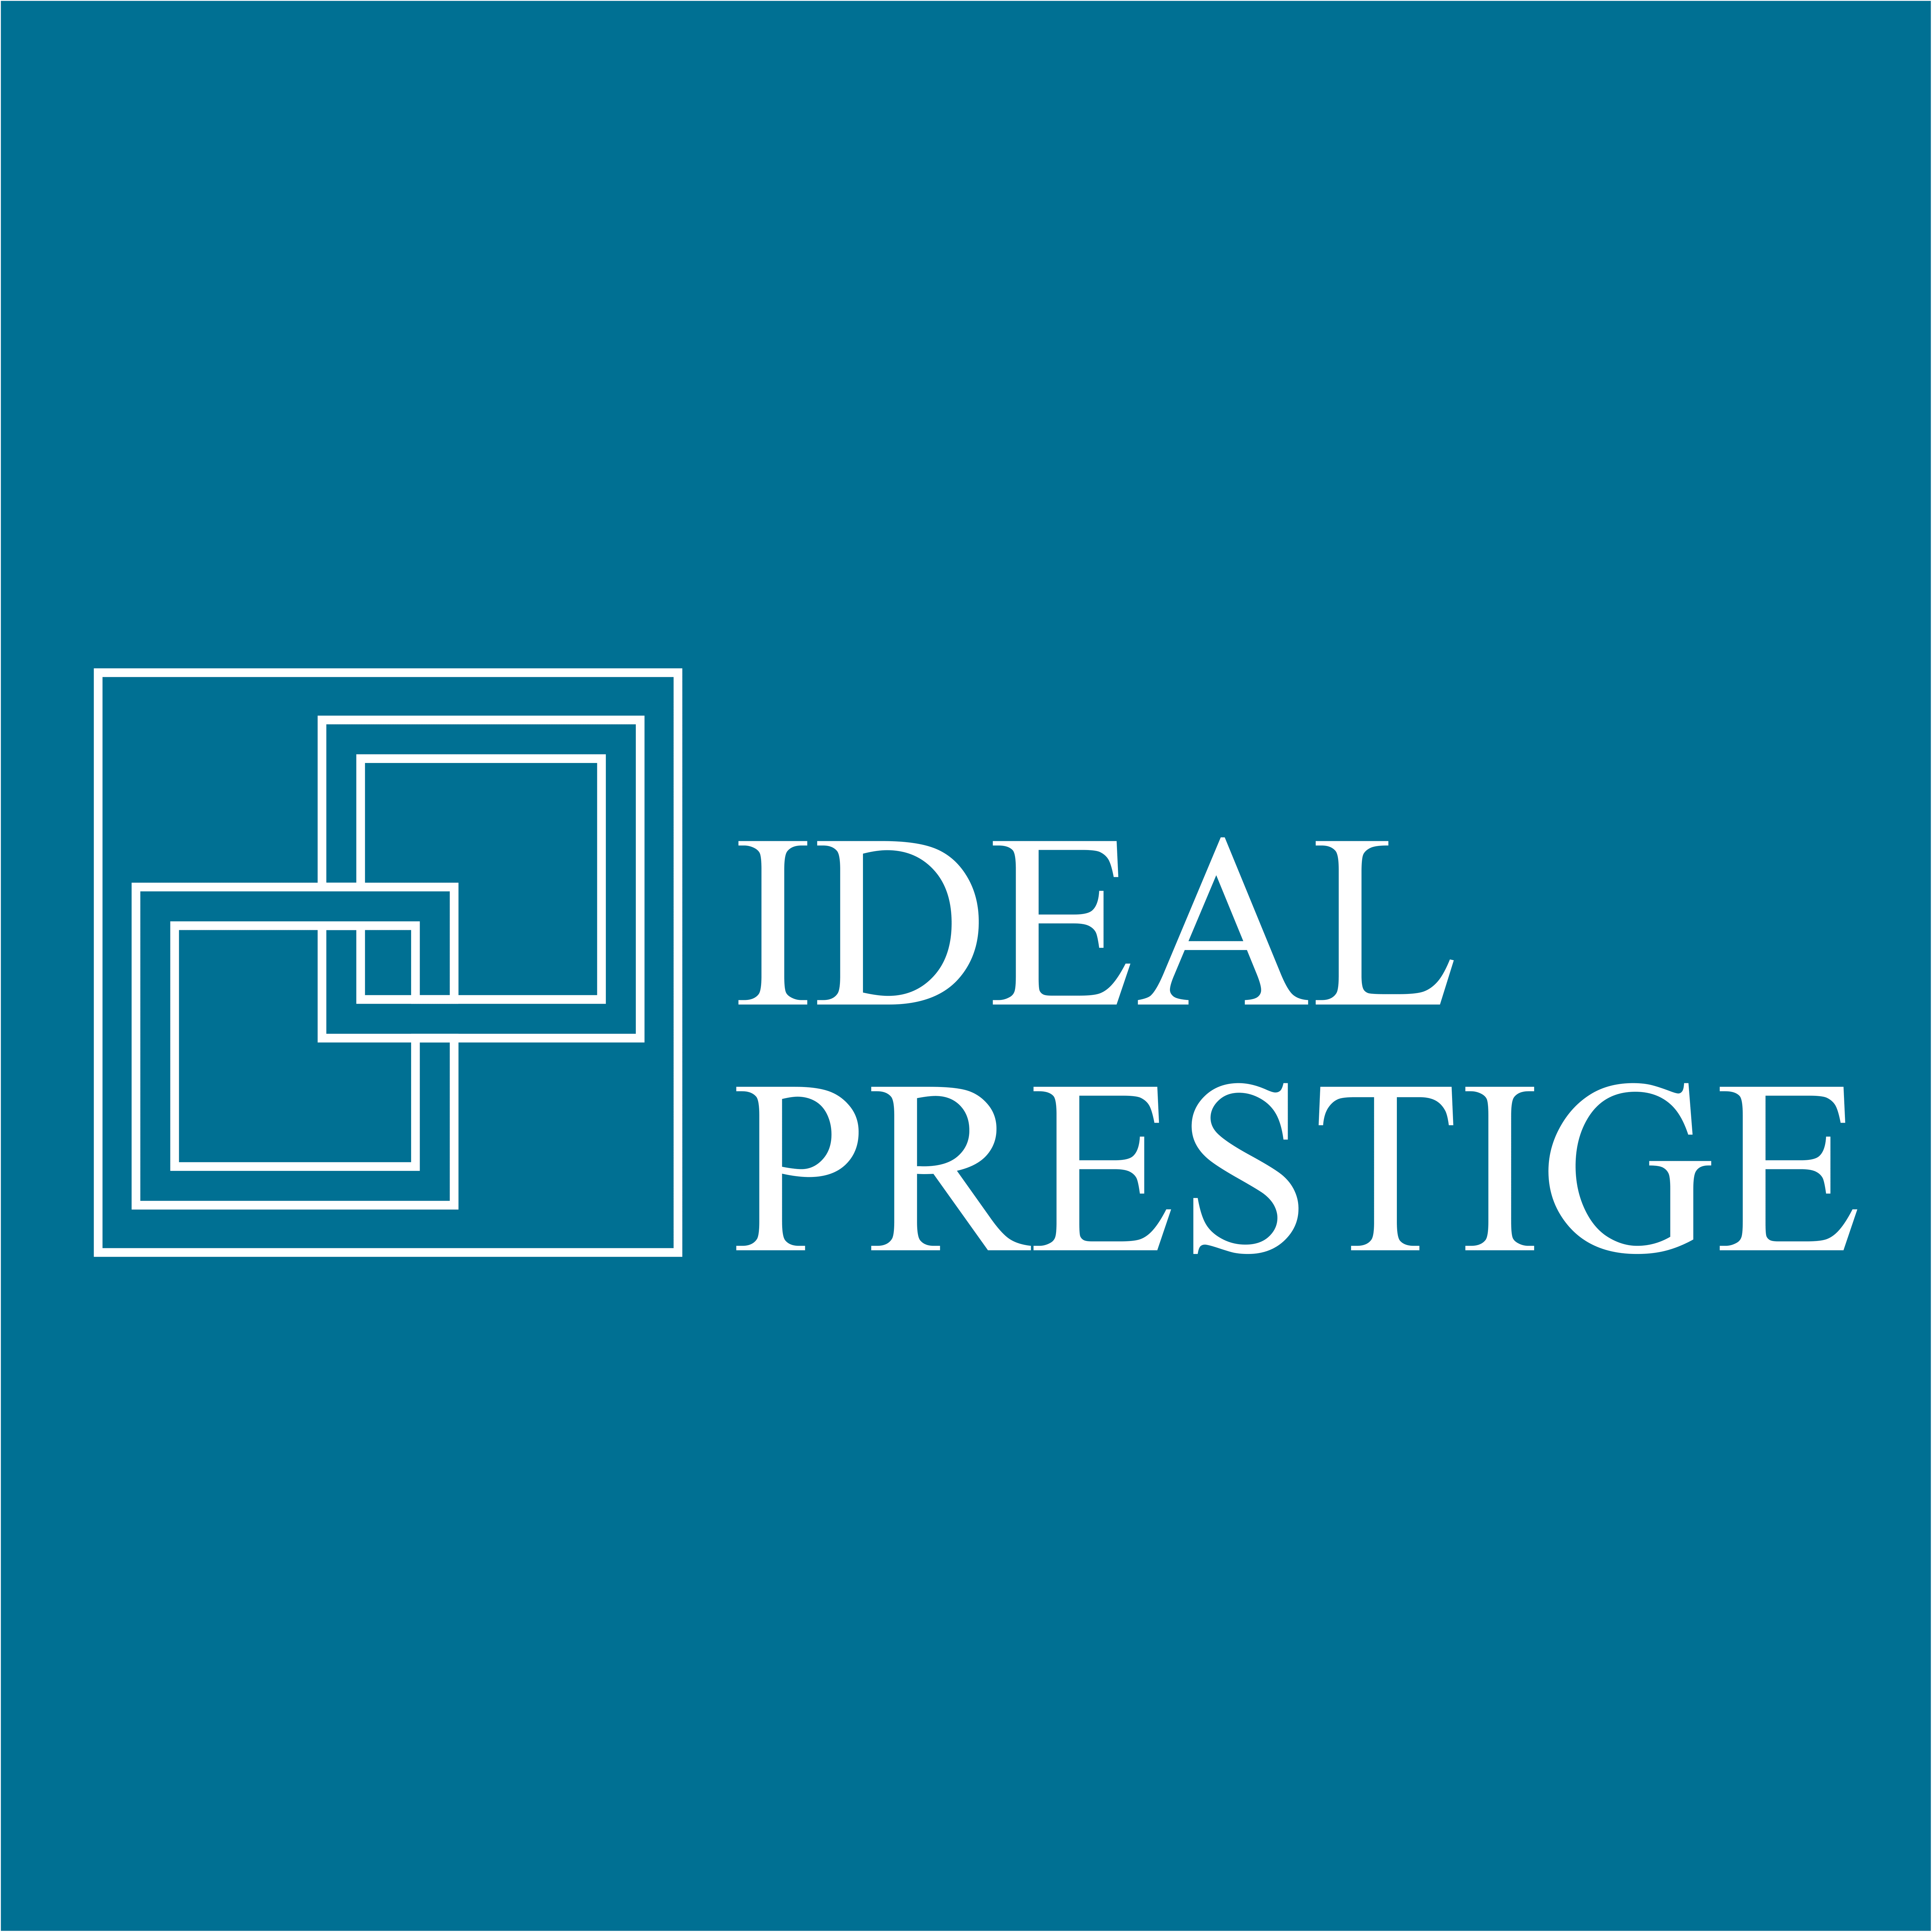 Ideal Prestige Showroom